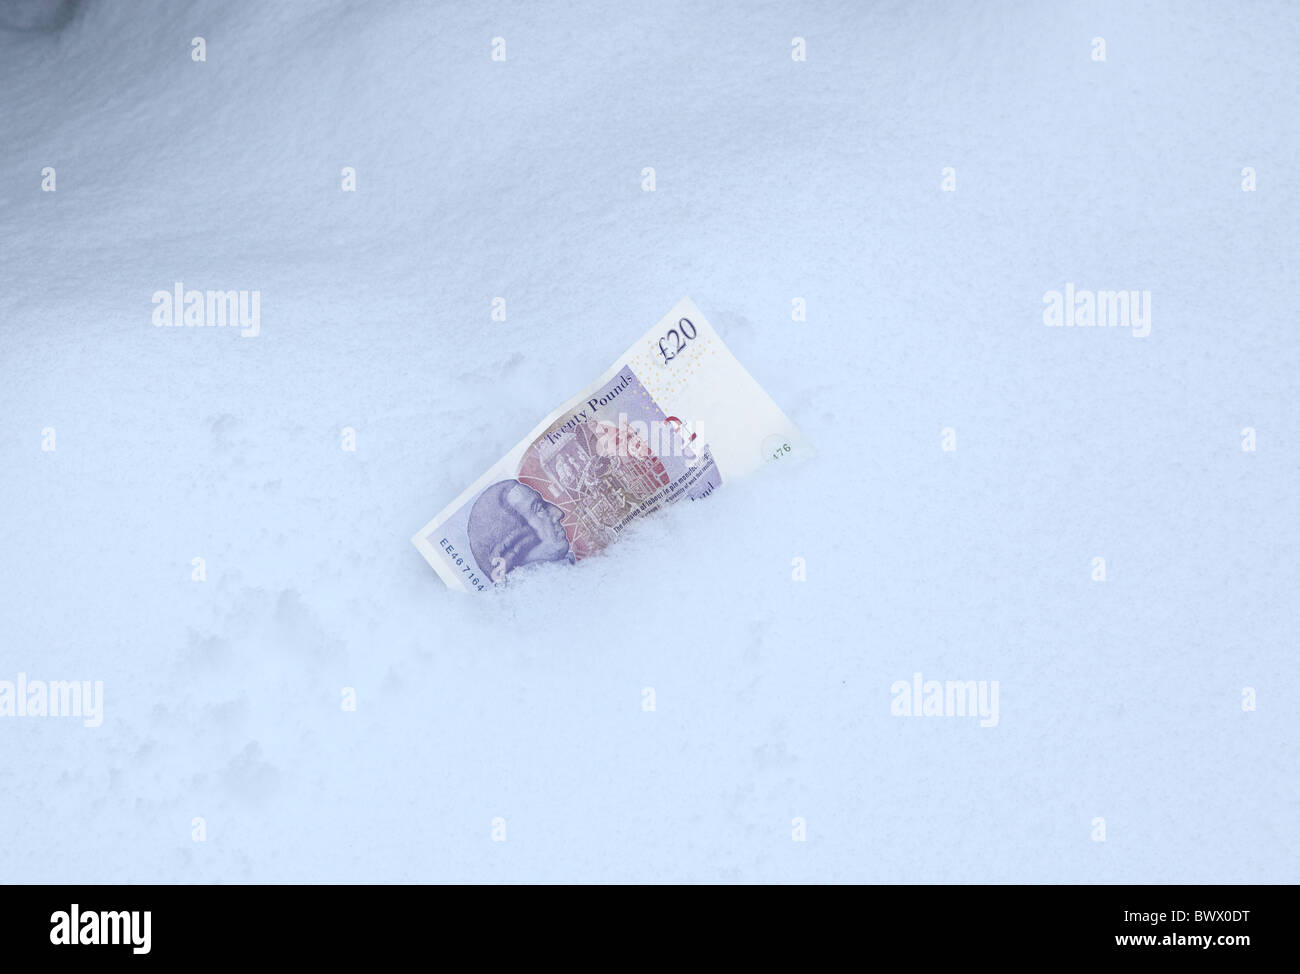 £20 note lying on the snow - Stock Image